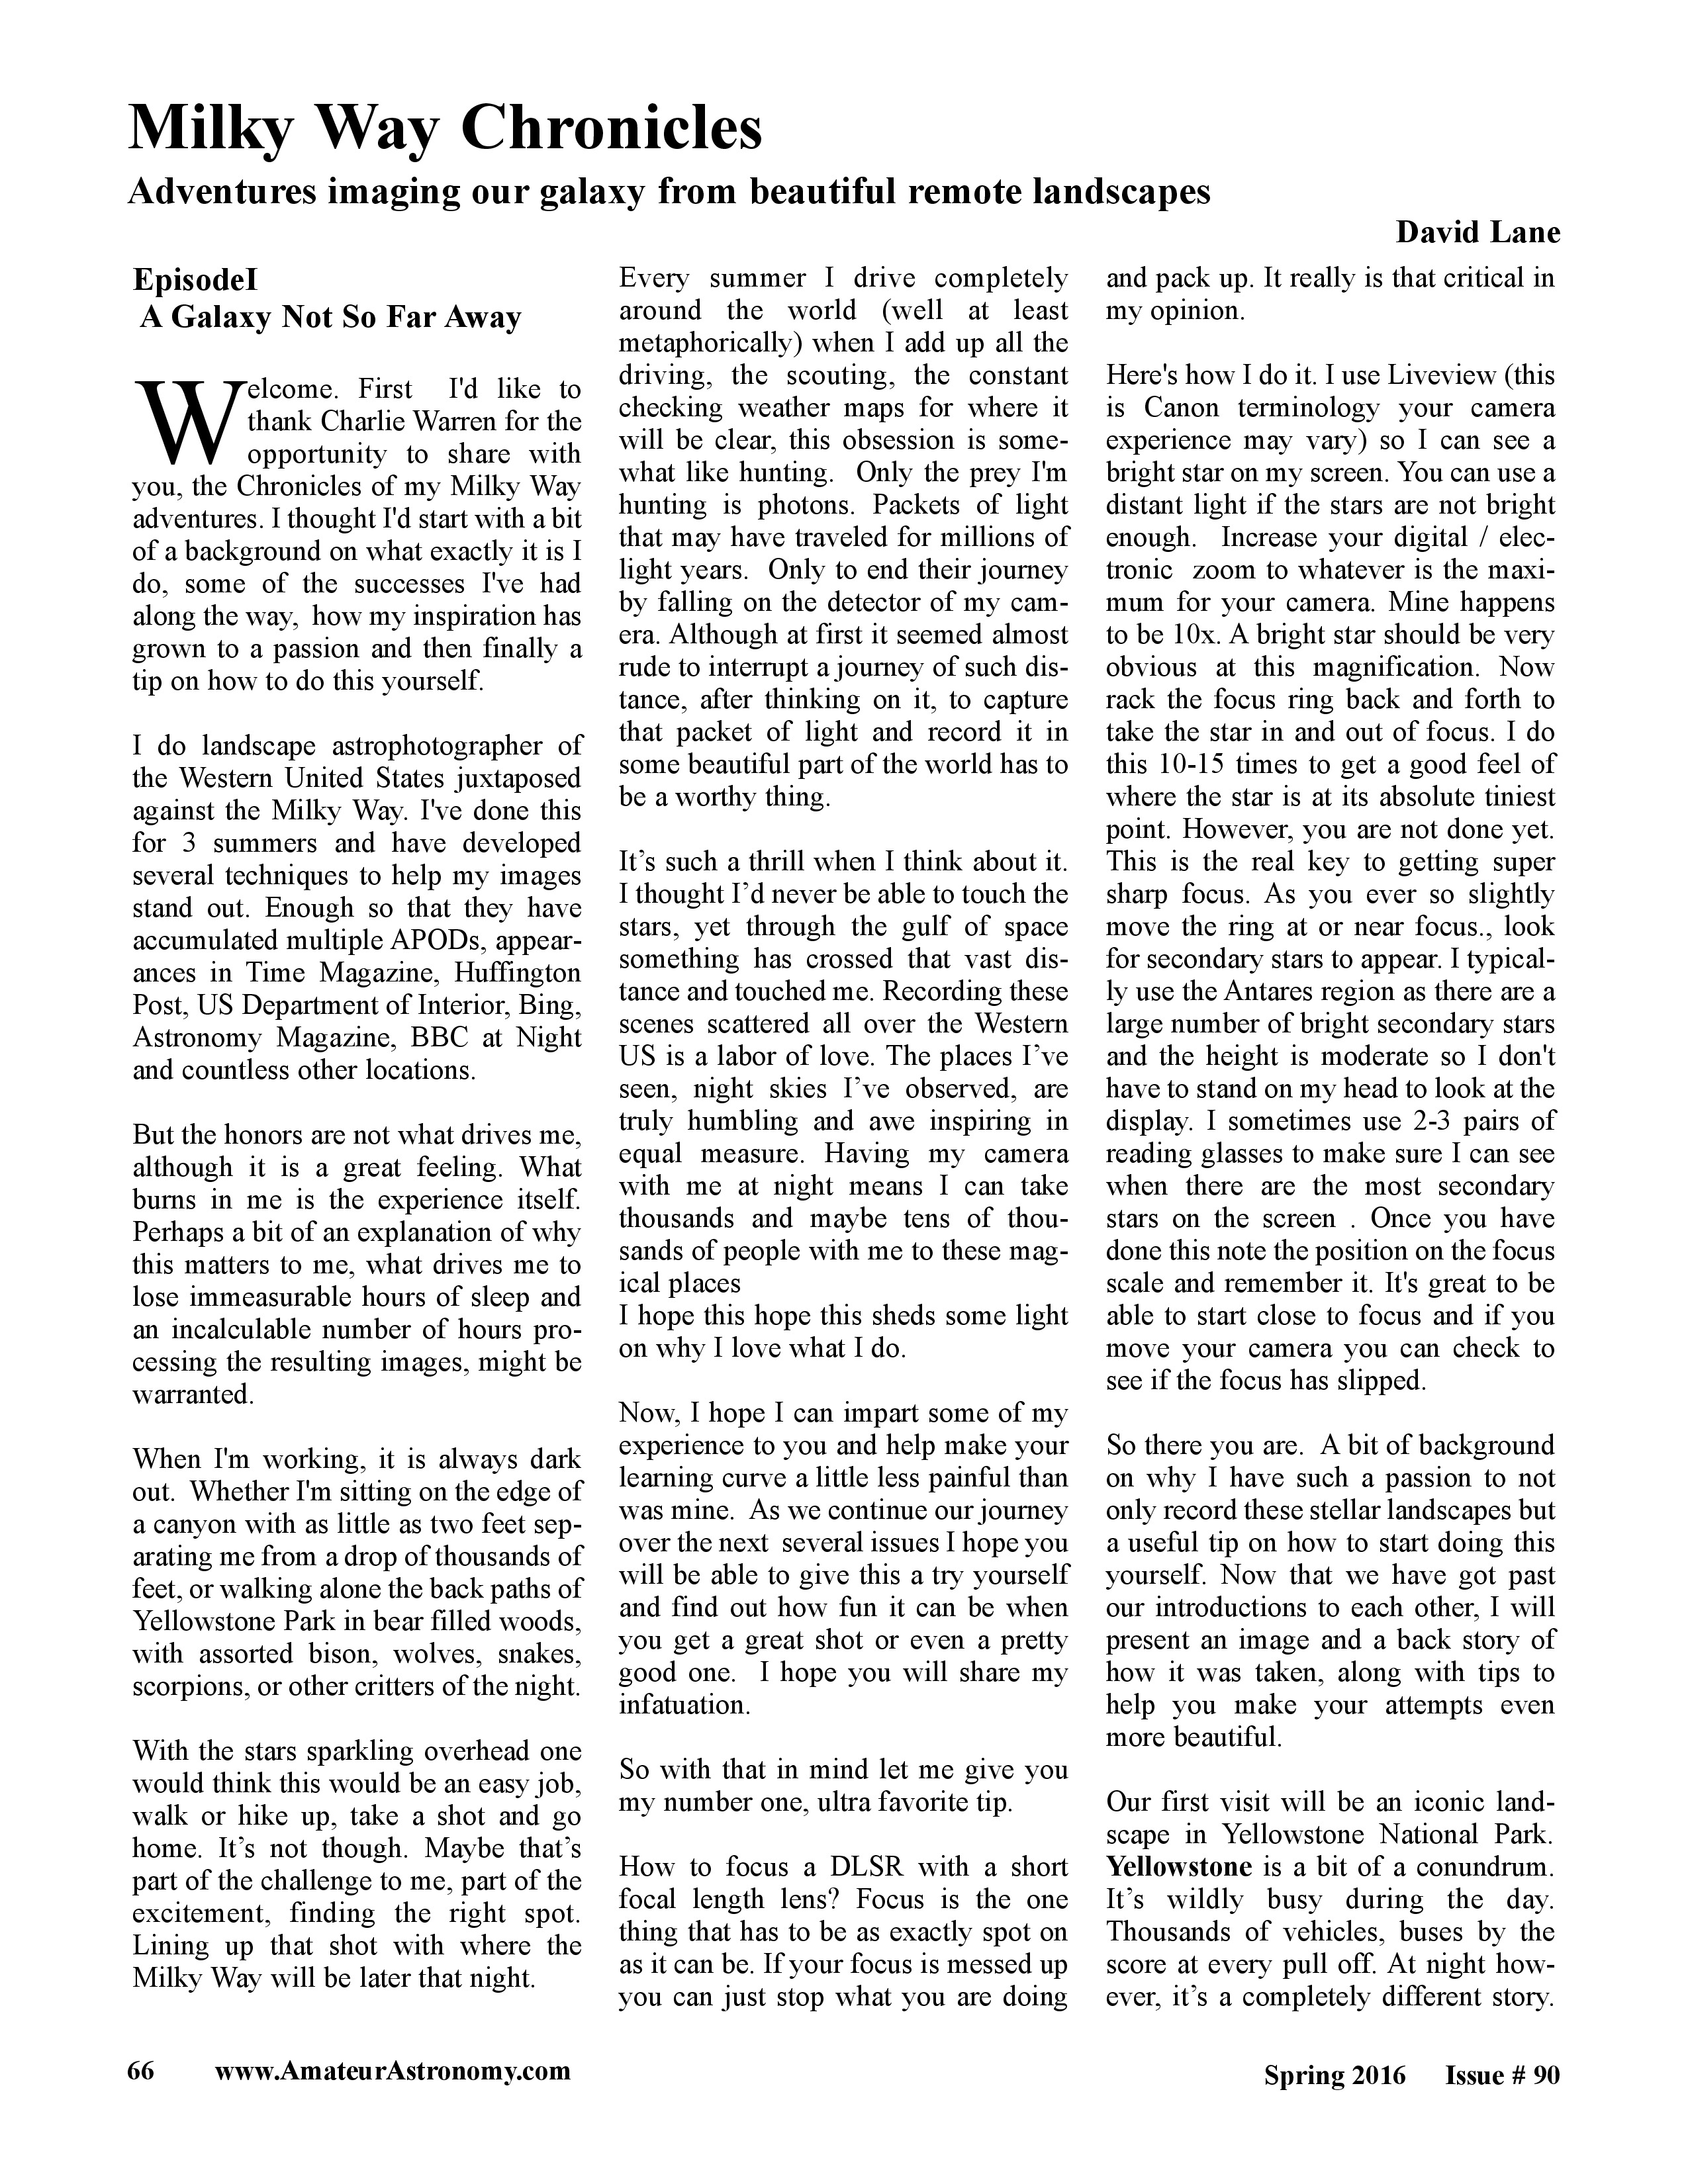 Milky Way Chronicles_Lane-page-1